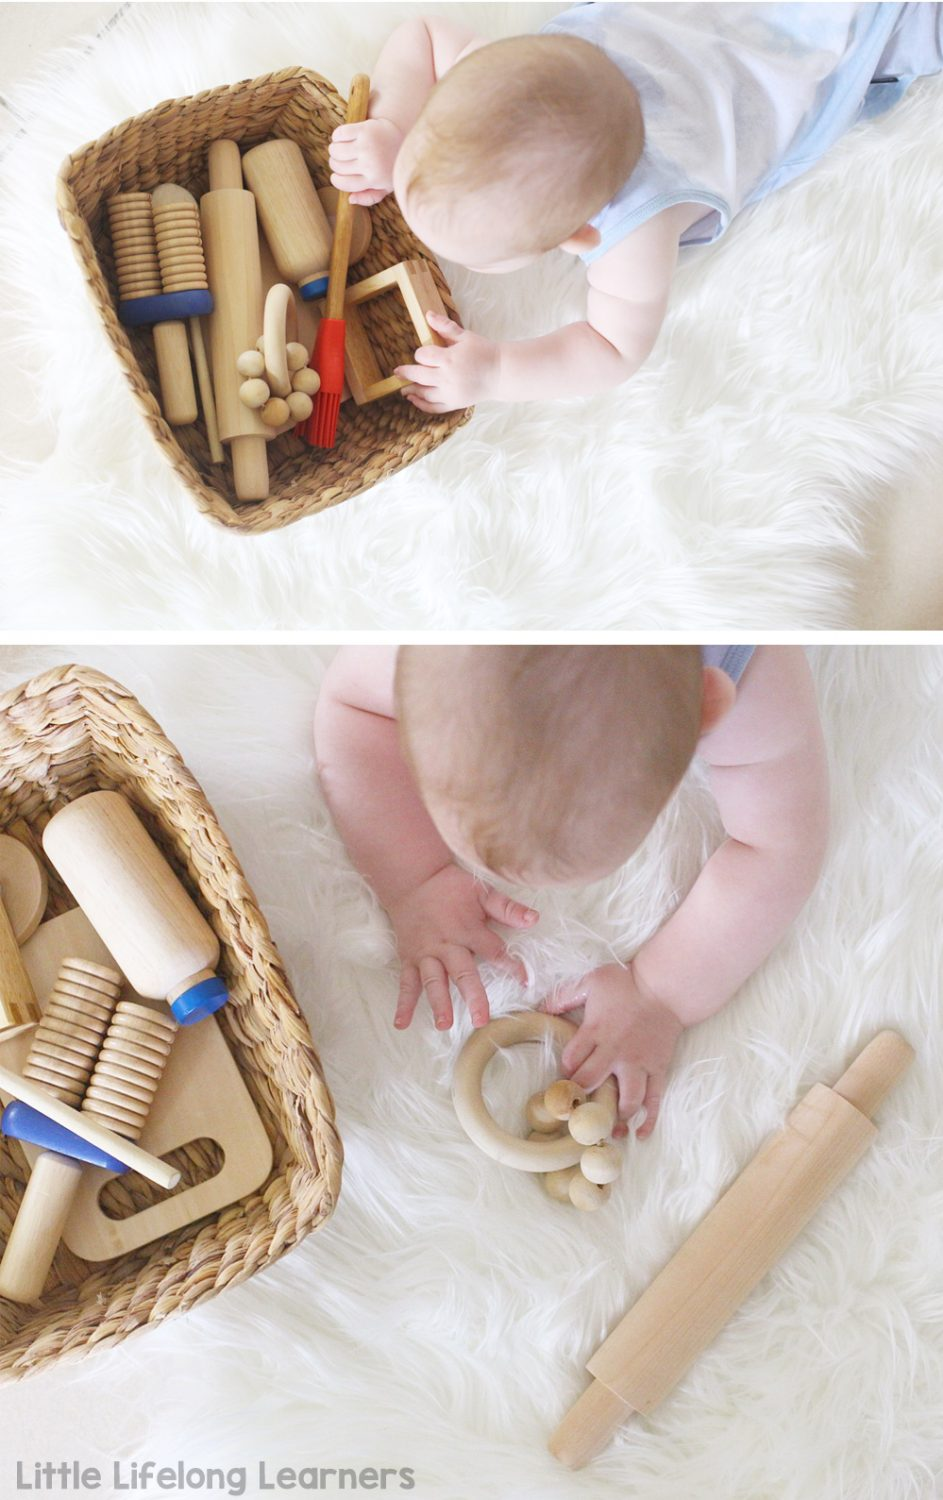 Sensory play ideas for babies | discovery baskets for babies | activities for playing with your baby | 3 month old | 6 month old | learning at home | exploring touch, feel, taste, small and sound | exploring the 5 senses